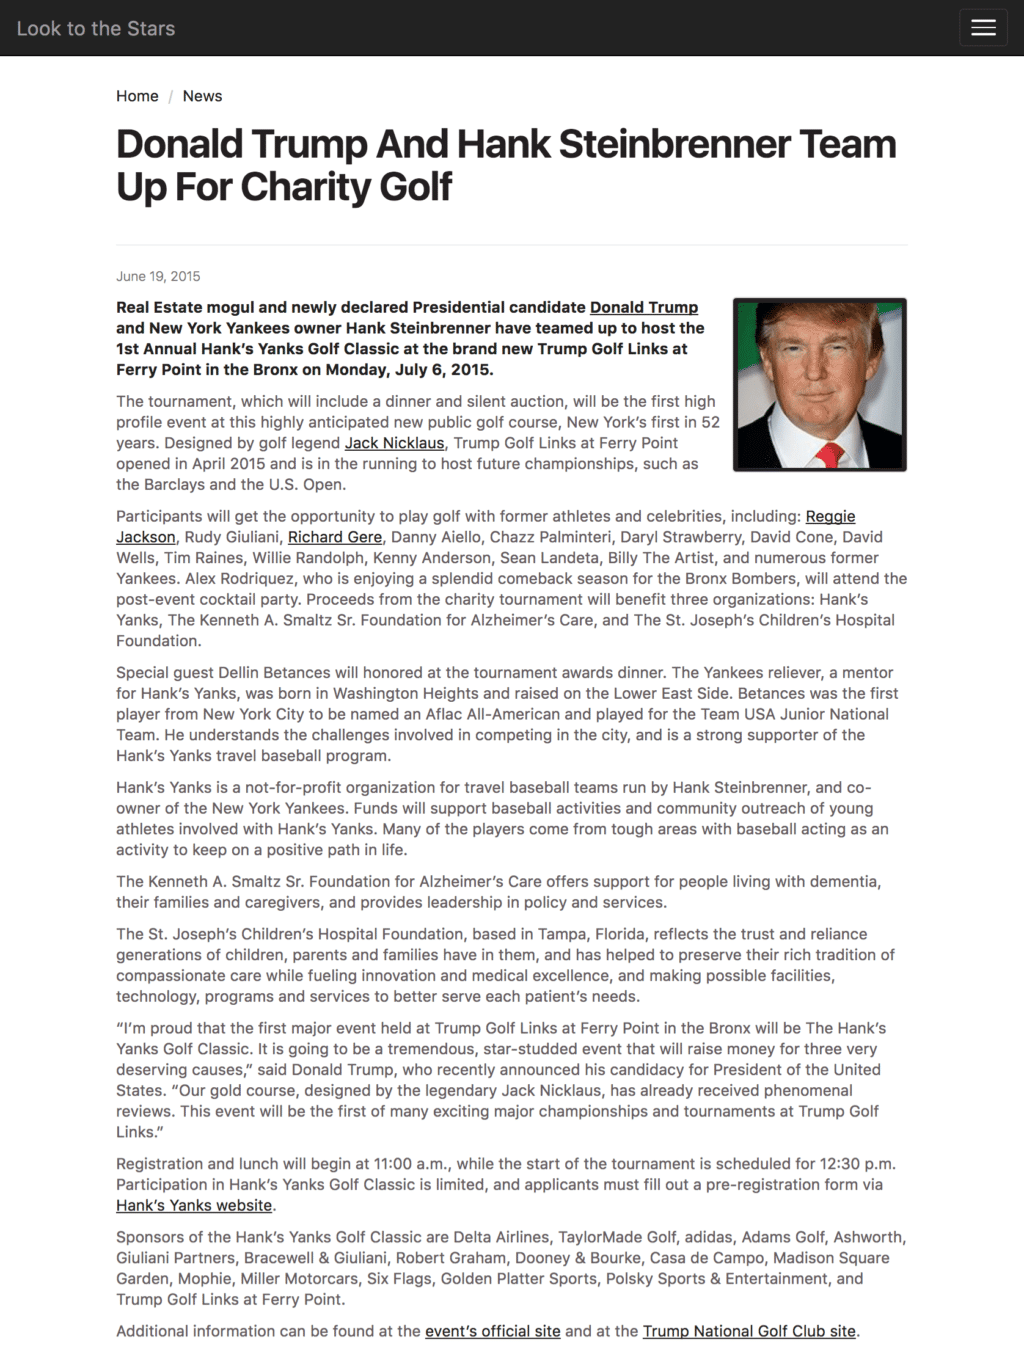 Donald Trump and Hank Steinbrenner Team Up for a Charity Golf Event Held at His Golf Course in the Bronx